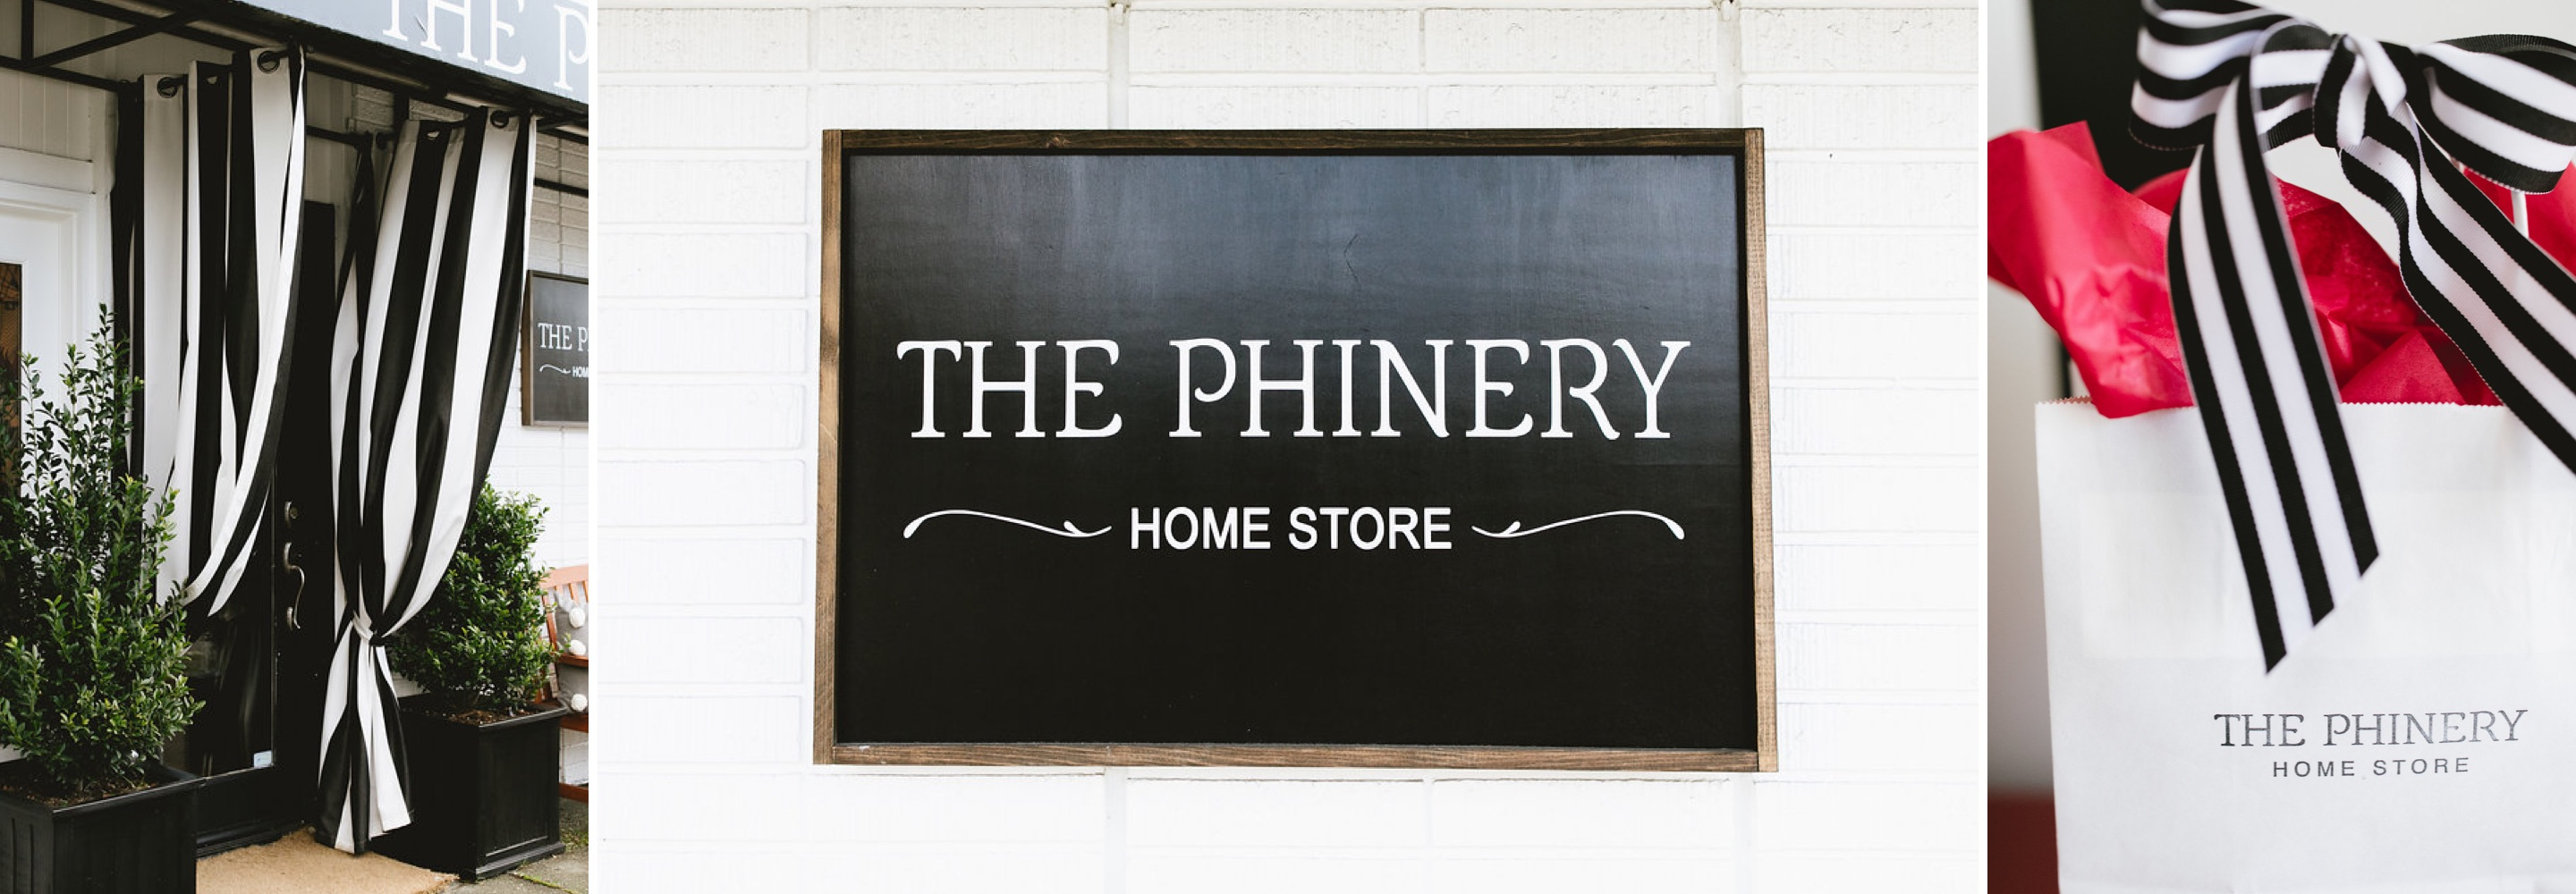 The Phinery Retail Store - Seattle WA